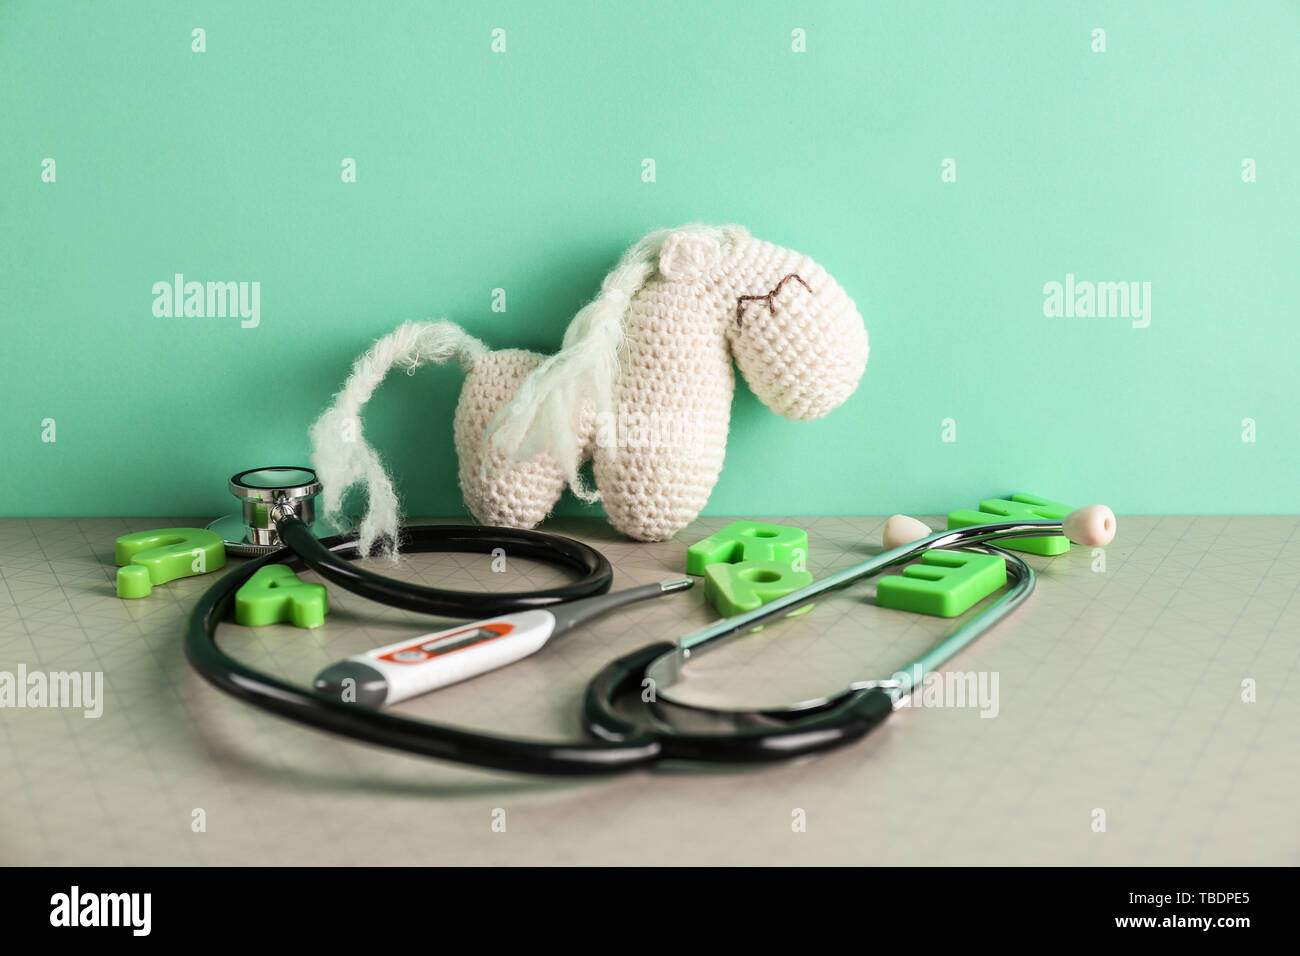 Stethoscope, thermometer and toy on table - Stock Image